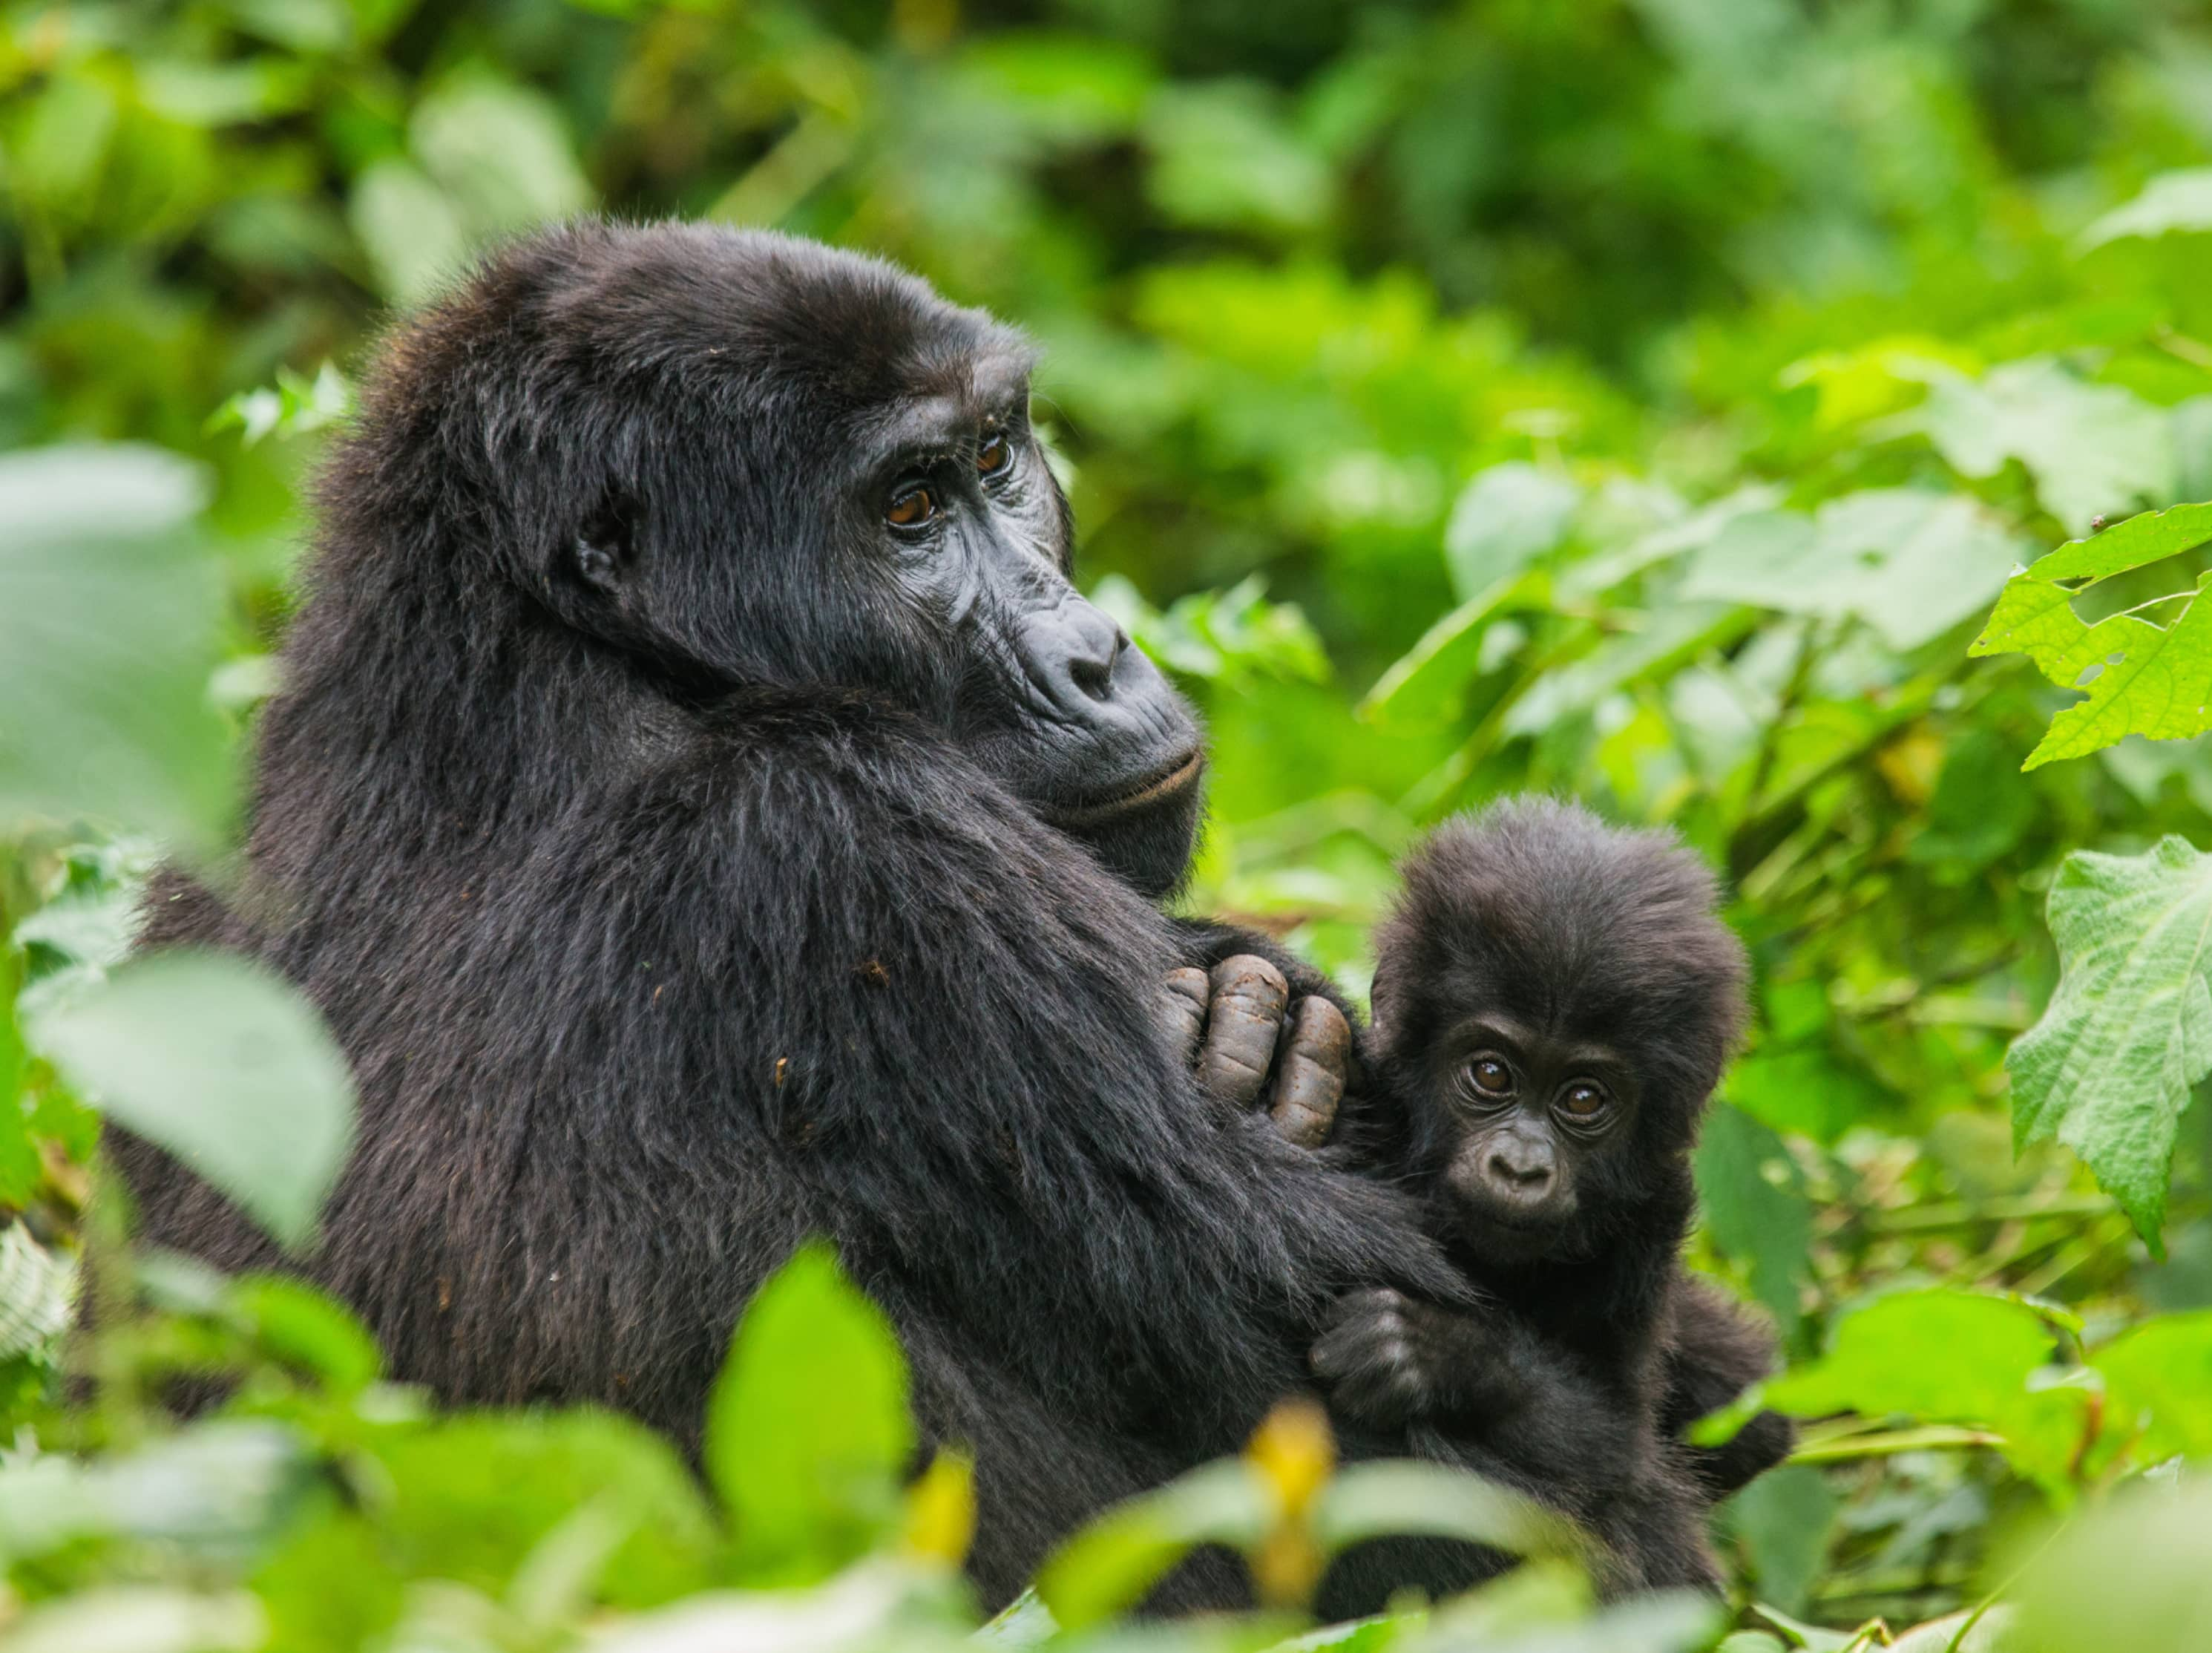 See a family of mountain gorillas up close in the wild.